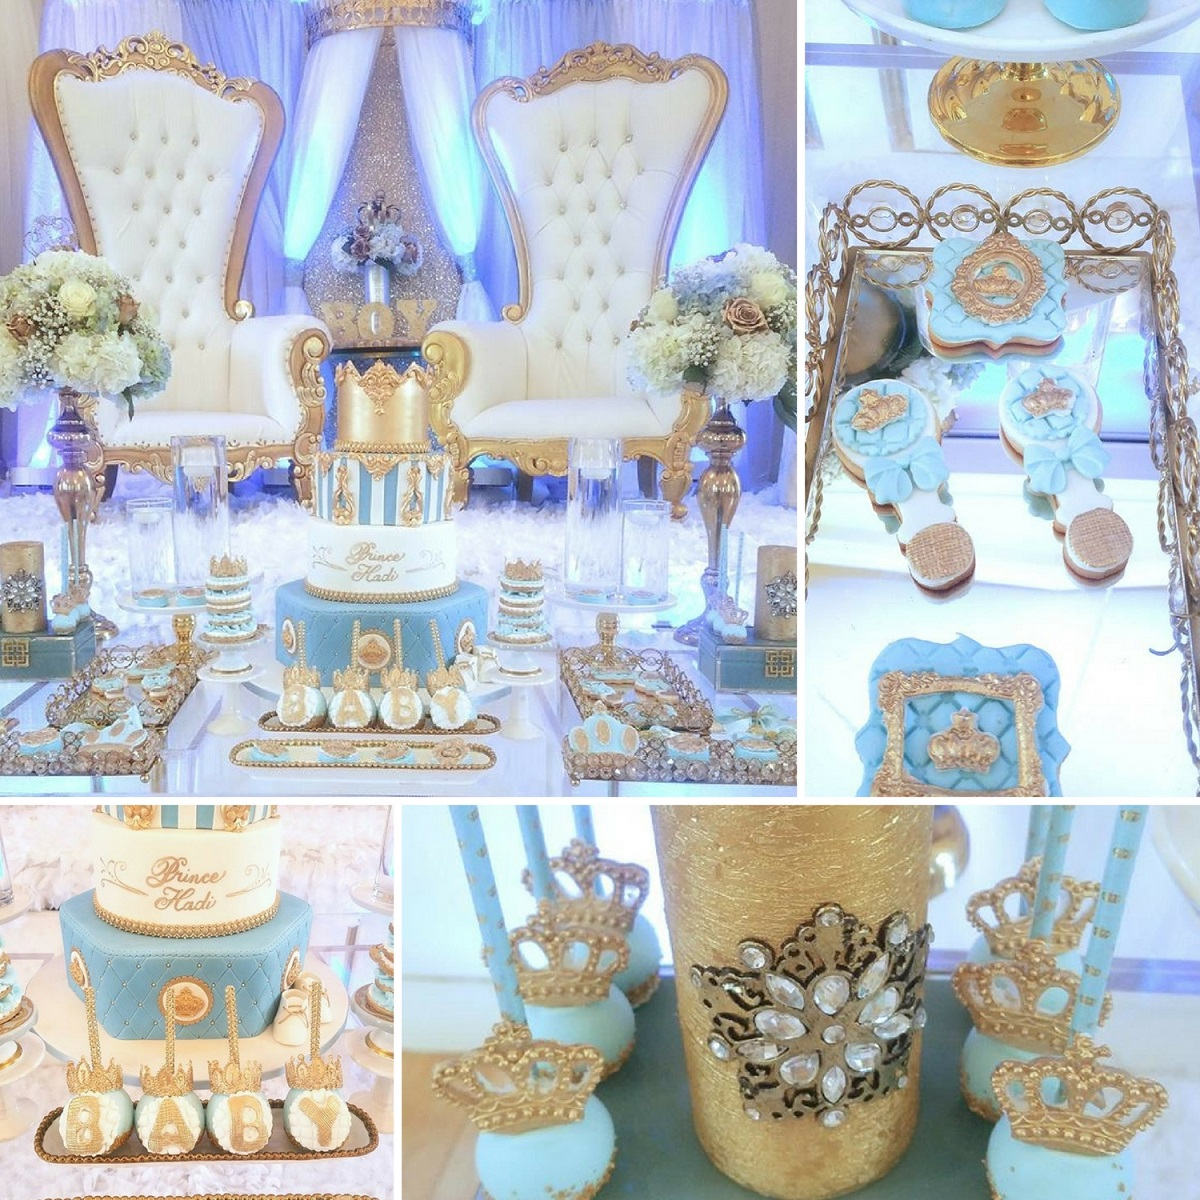 crown-prince-baby-shower